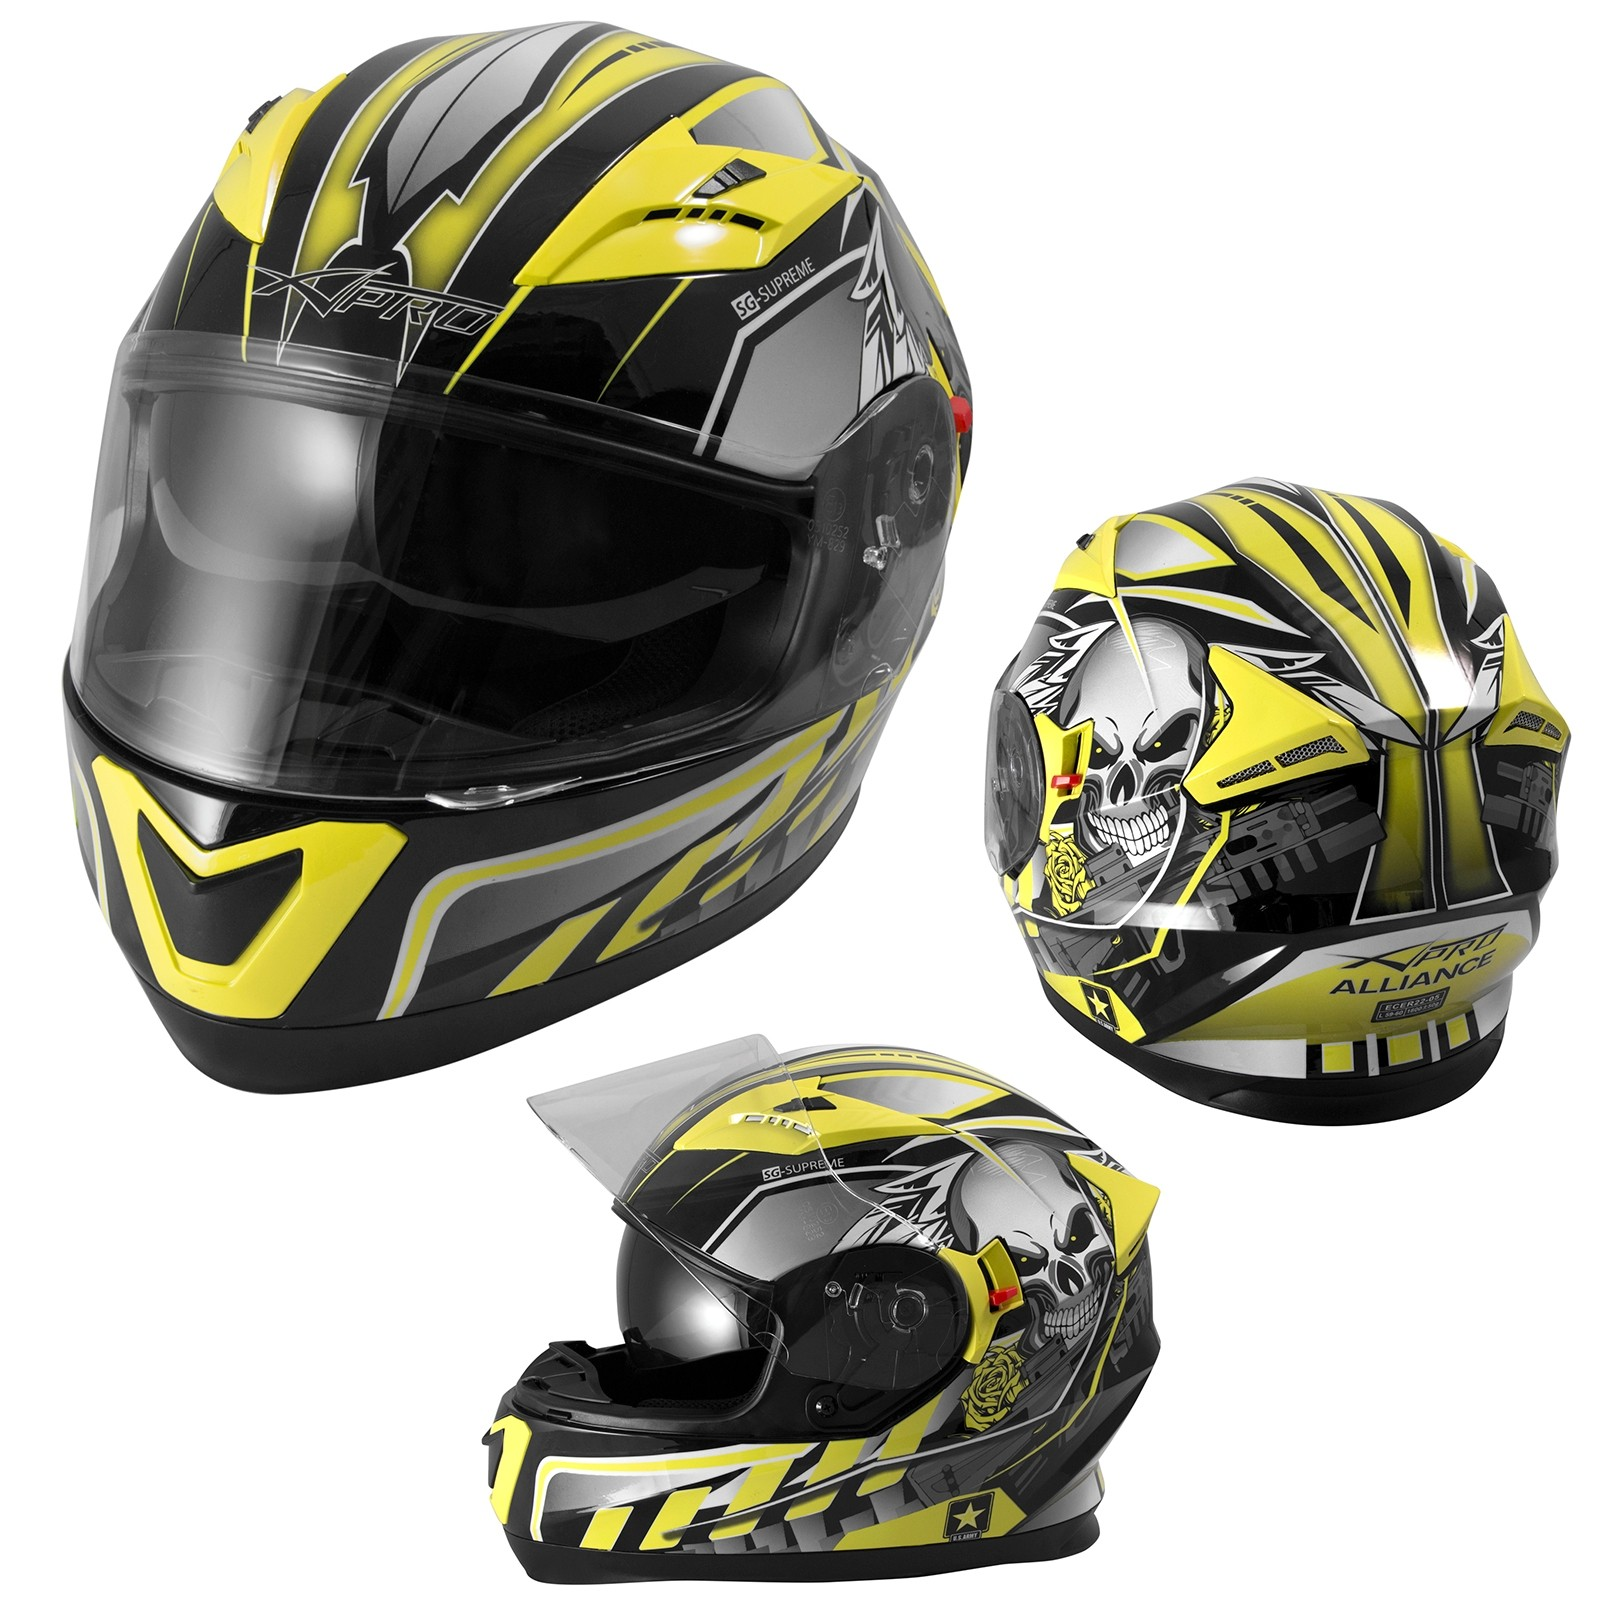 Alliance-Casco-Helmet-Motorcycle-Giallo-Fluo-Yellow-A-Pro-Sonic-Moto-Set